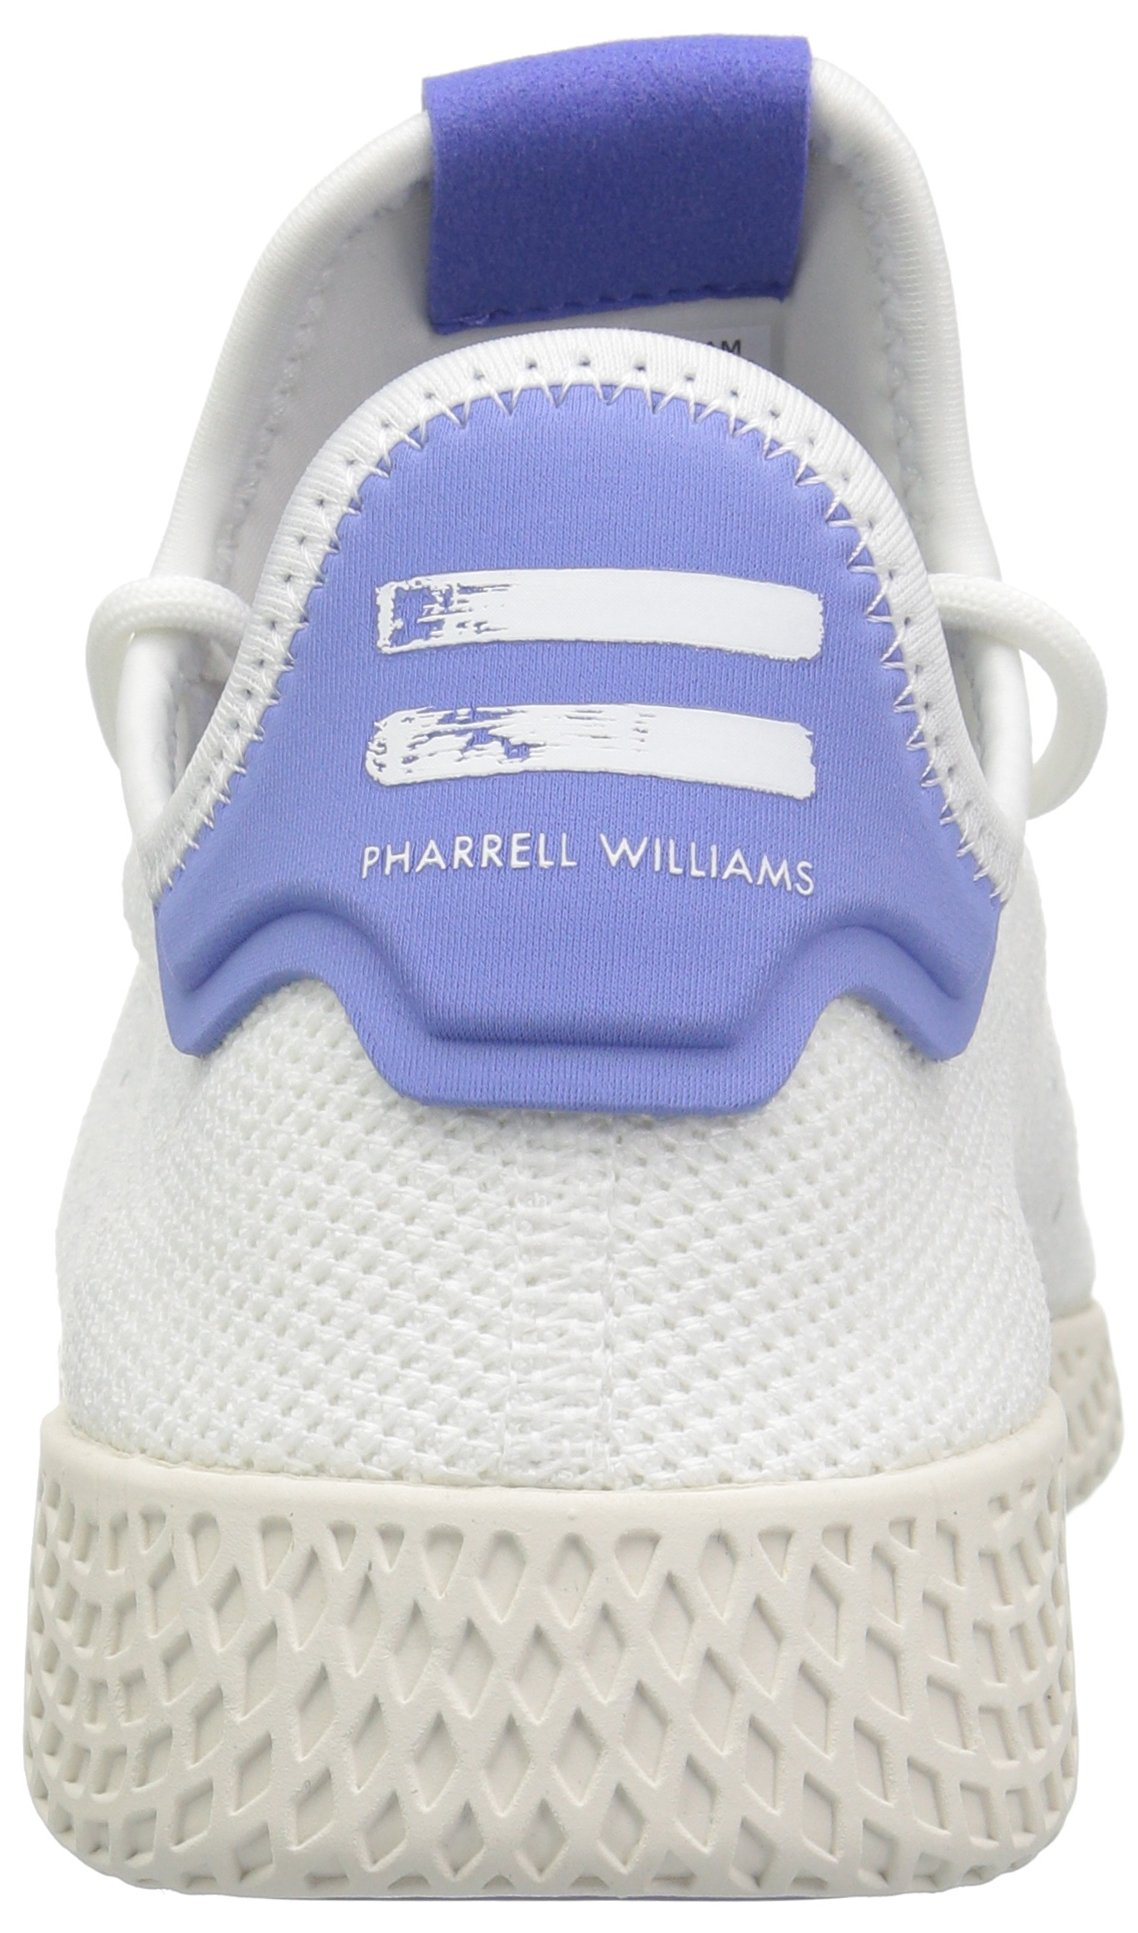 adidas Originals Men's Pharrell Williams Tennis HU Running Shoe, White/Chalk, 5.5 M US by adidas Originals (Image #2)